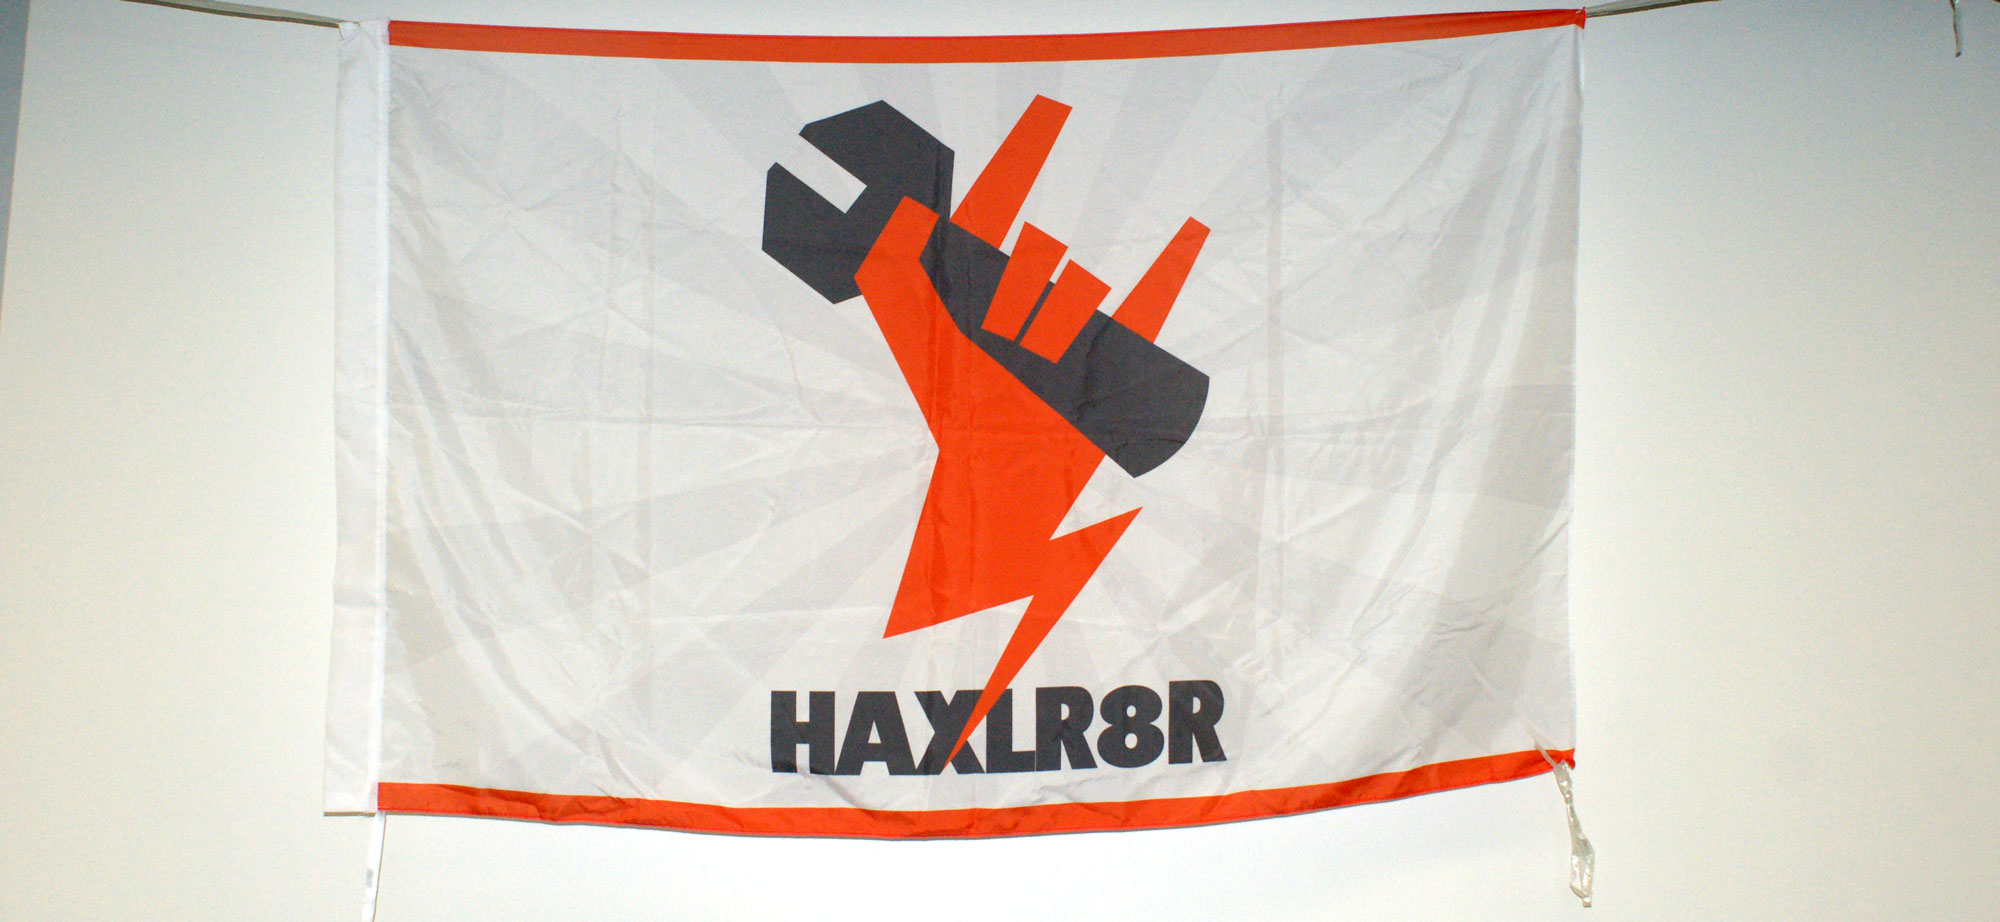 The 4 most exciting HAXLR8R hardware startups